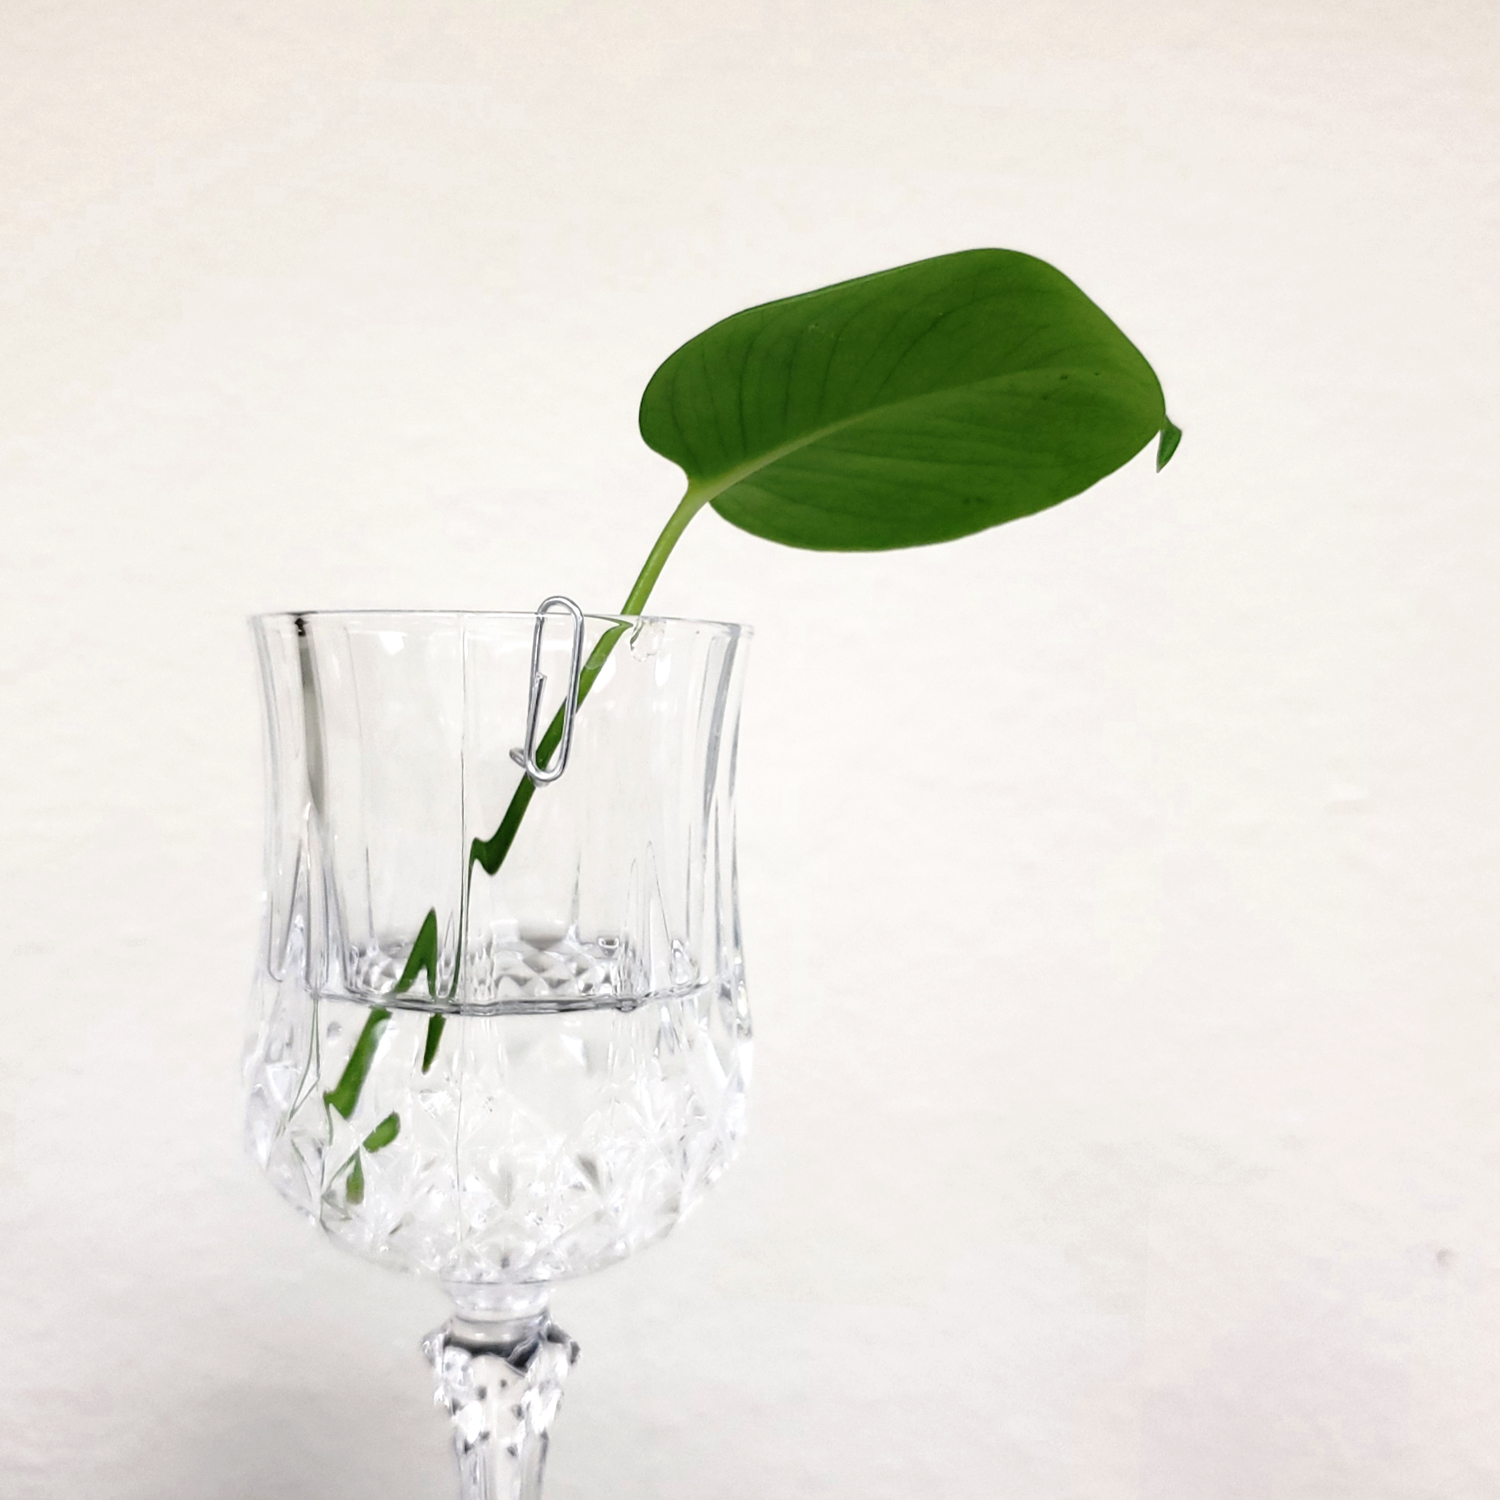 A philo leaf propagating in a cup